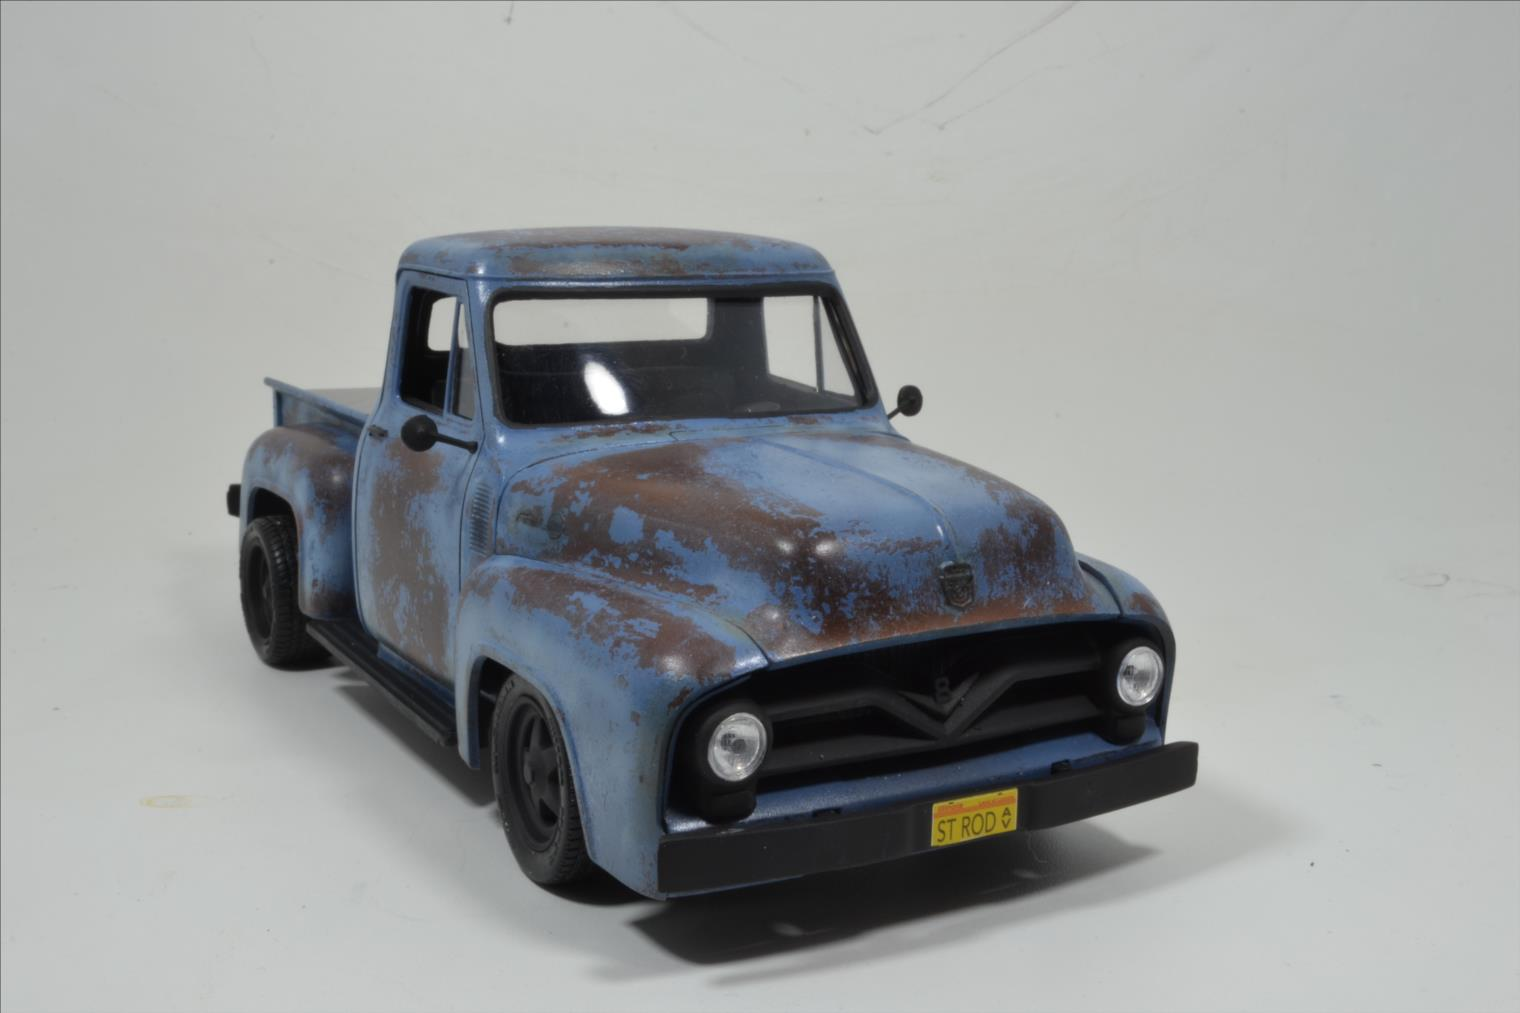 ROD FORD F100 (1/24 MONOGRAM) - Page 2 20041410174522494216744381